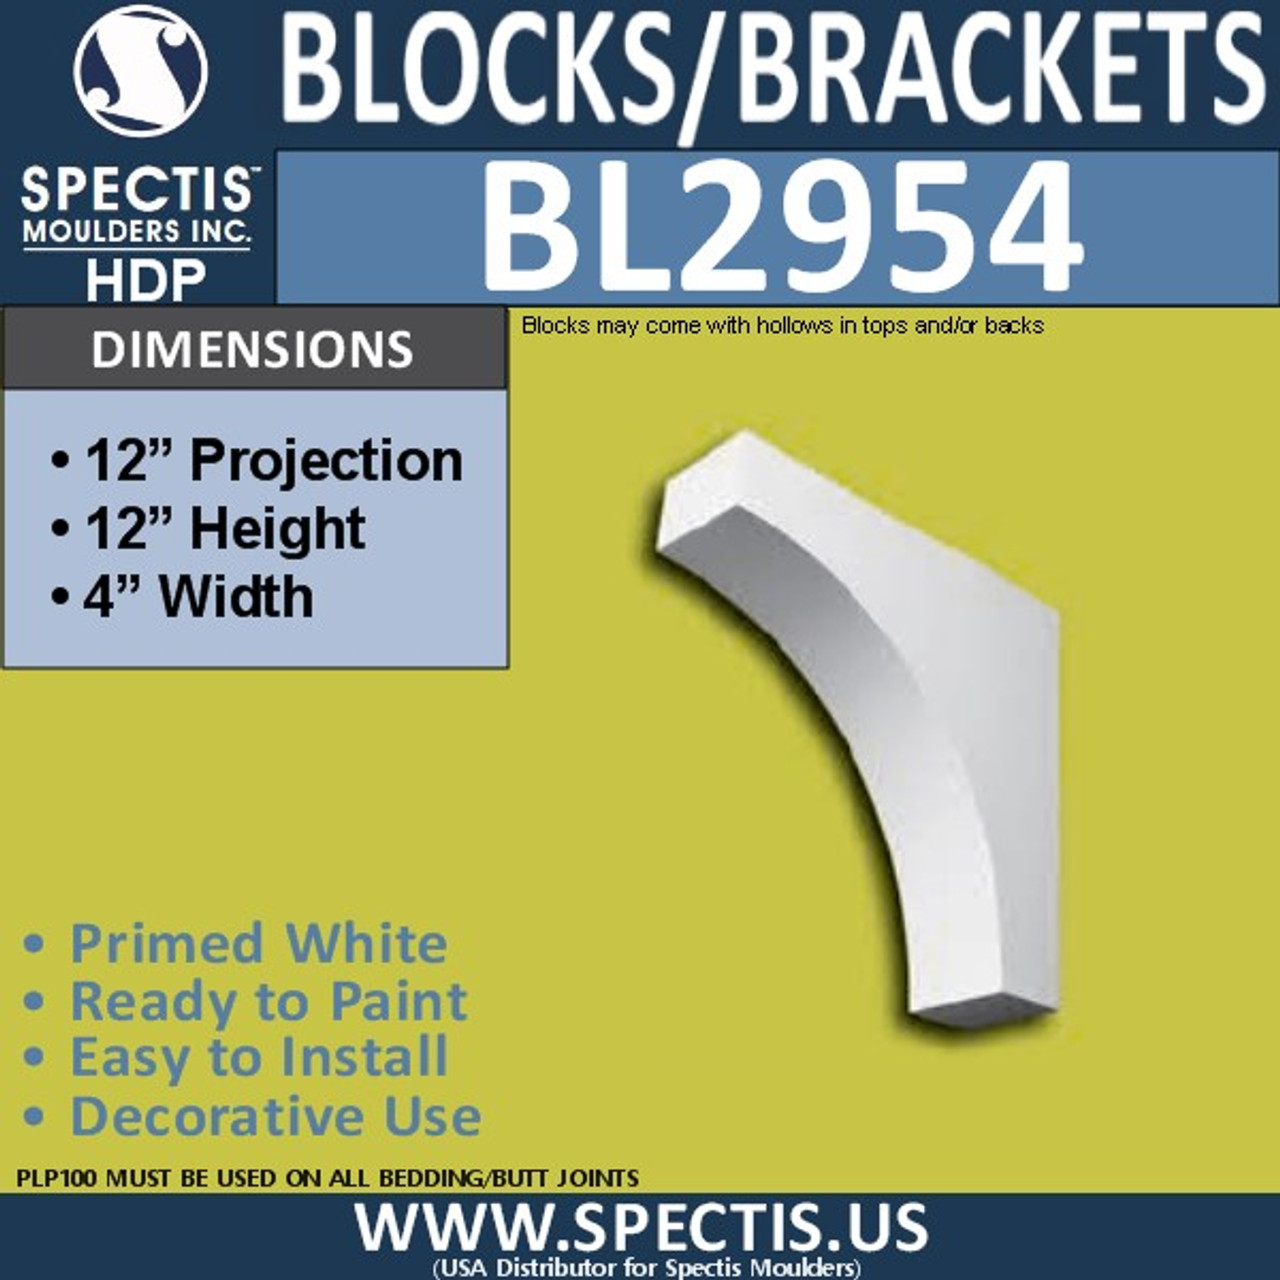 "BL2954 Eave Block or Bracket 4""W x 12""H x 12"" P"